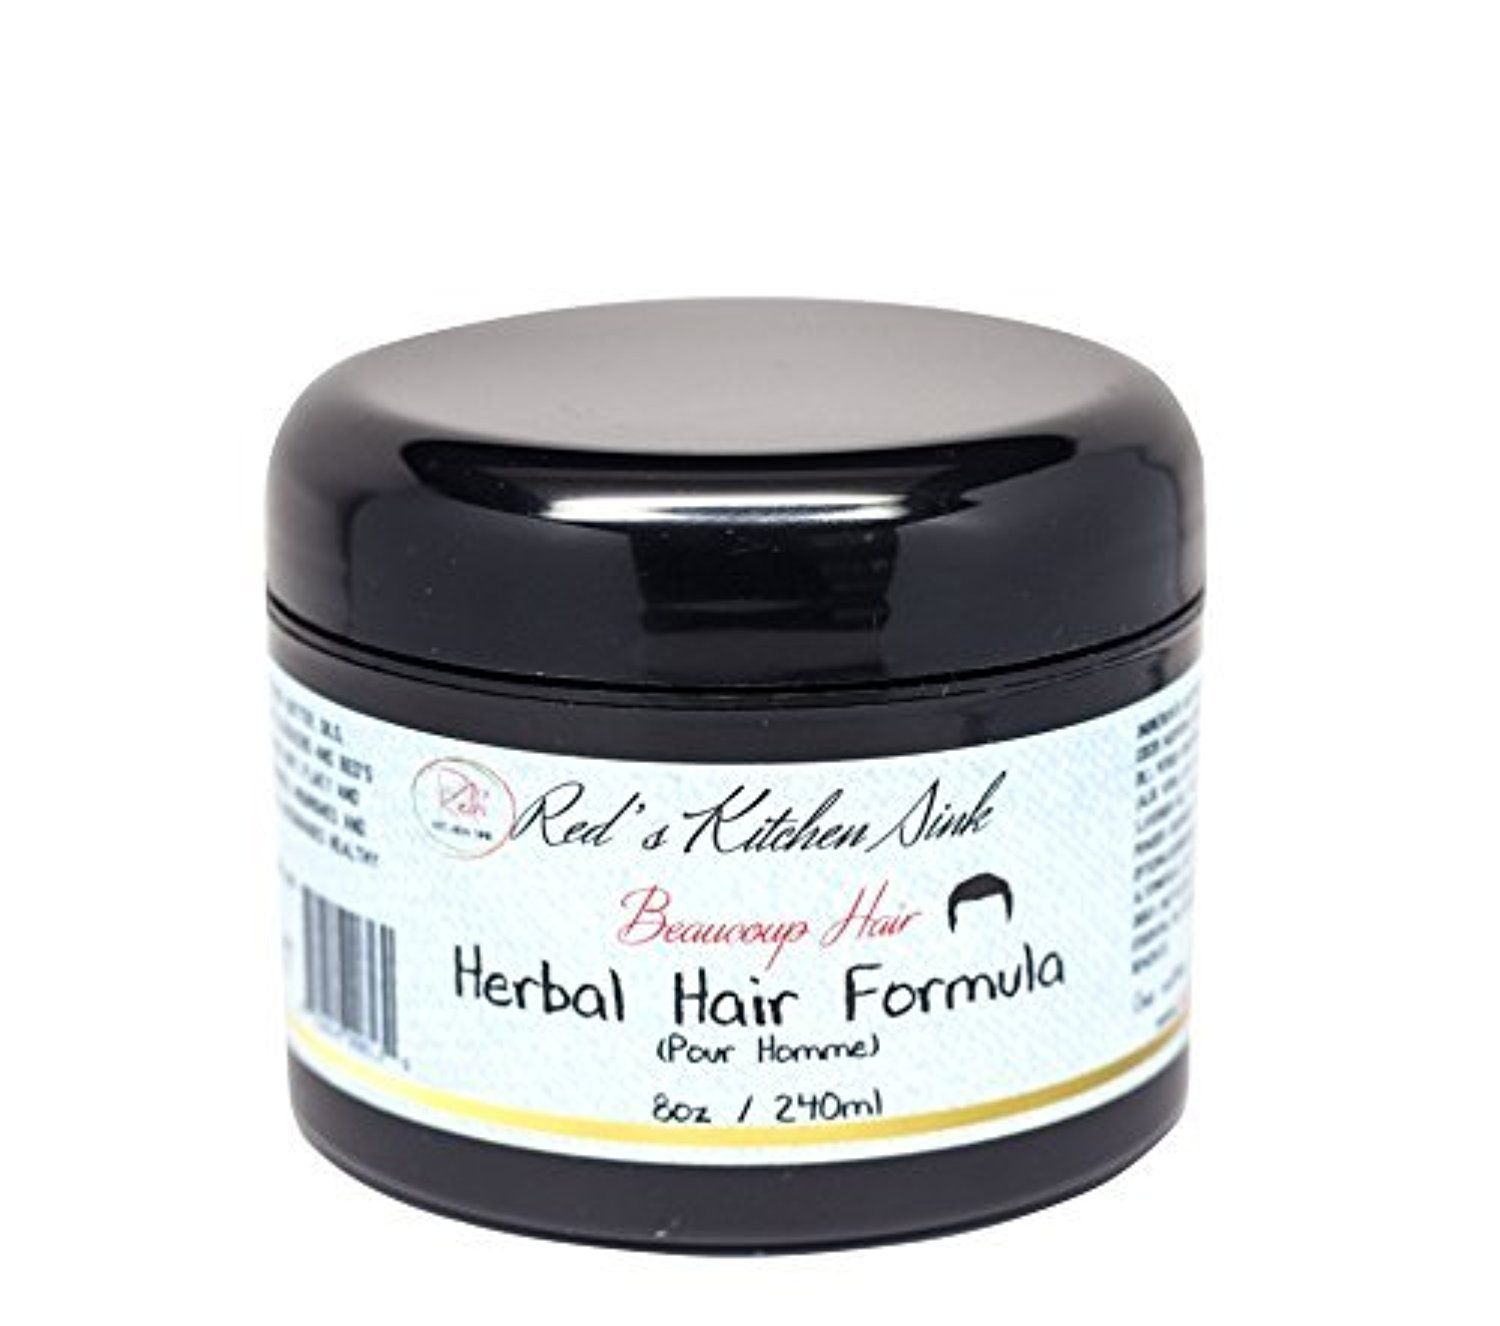 Beaucoup Hair Herbal Hair Formula For Men Jumbo By Red S Kitchen Sink Awesome Products Selected By Anna Churchill Herbal Hair Men Moisturizer Herbalism